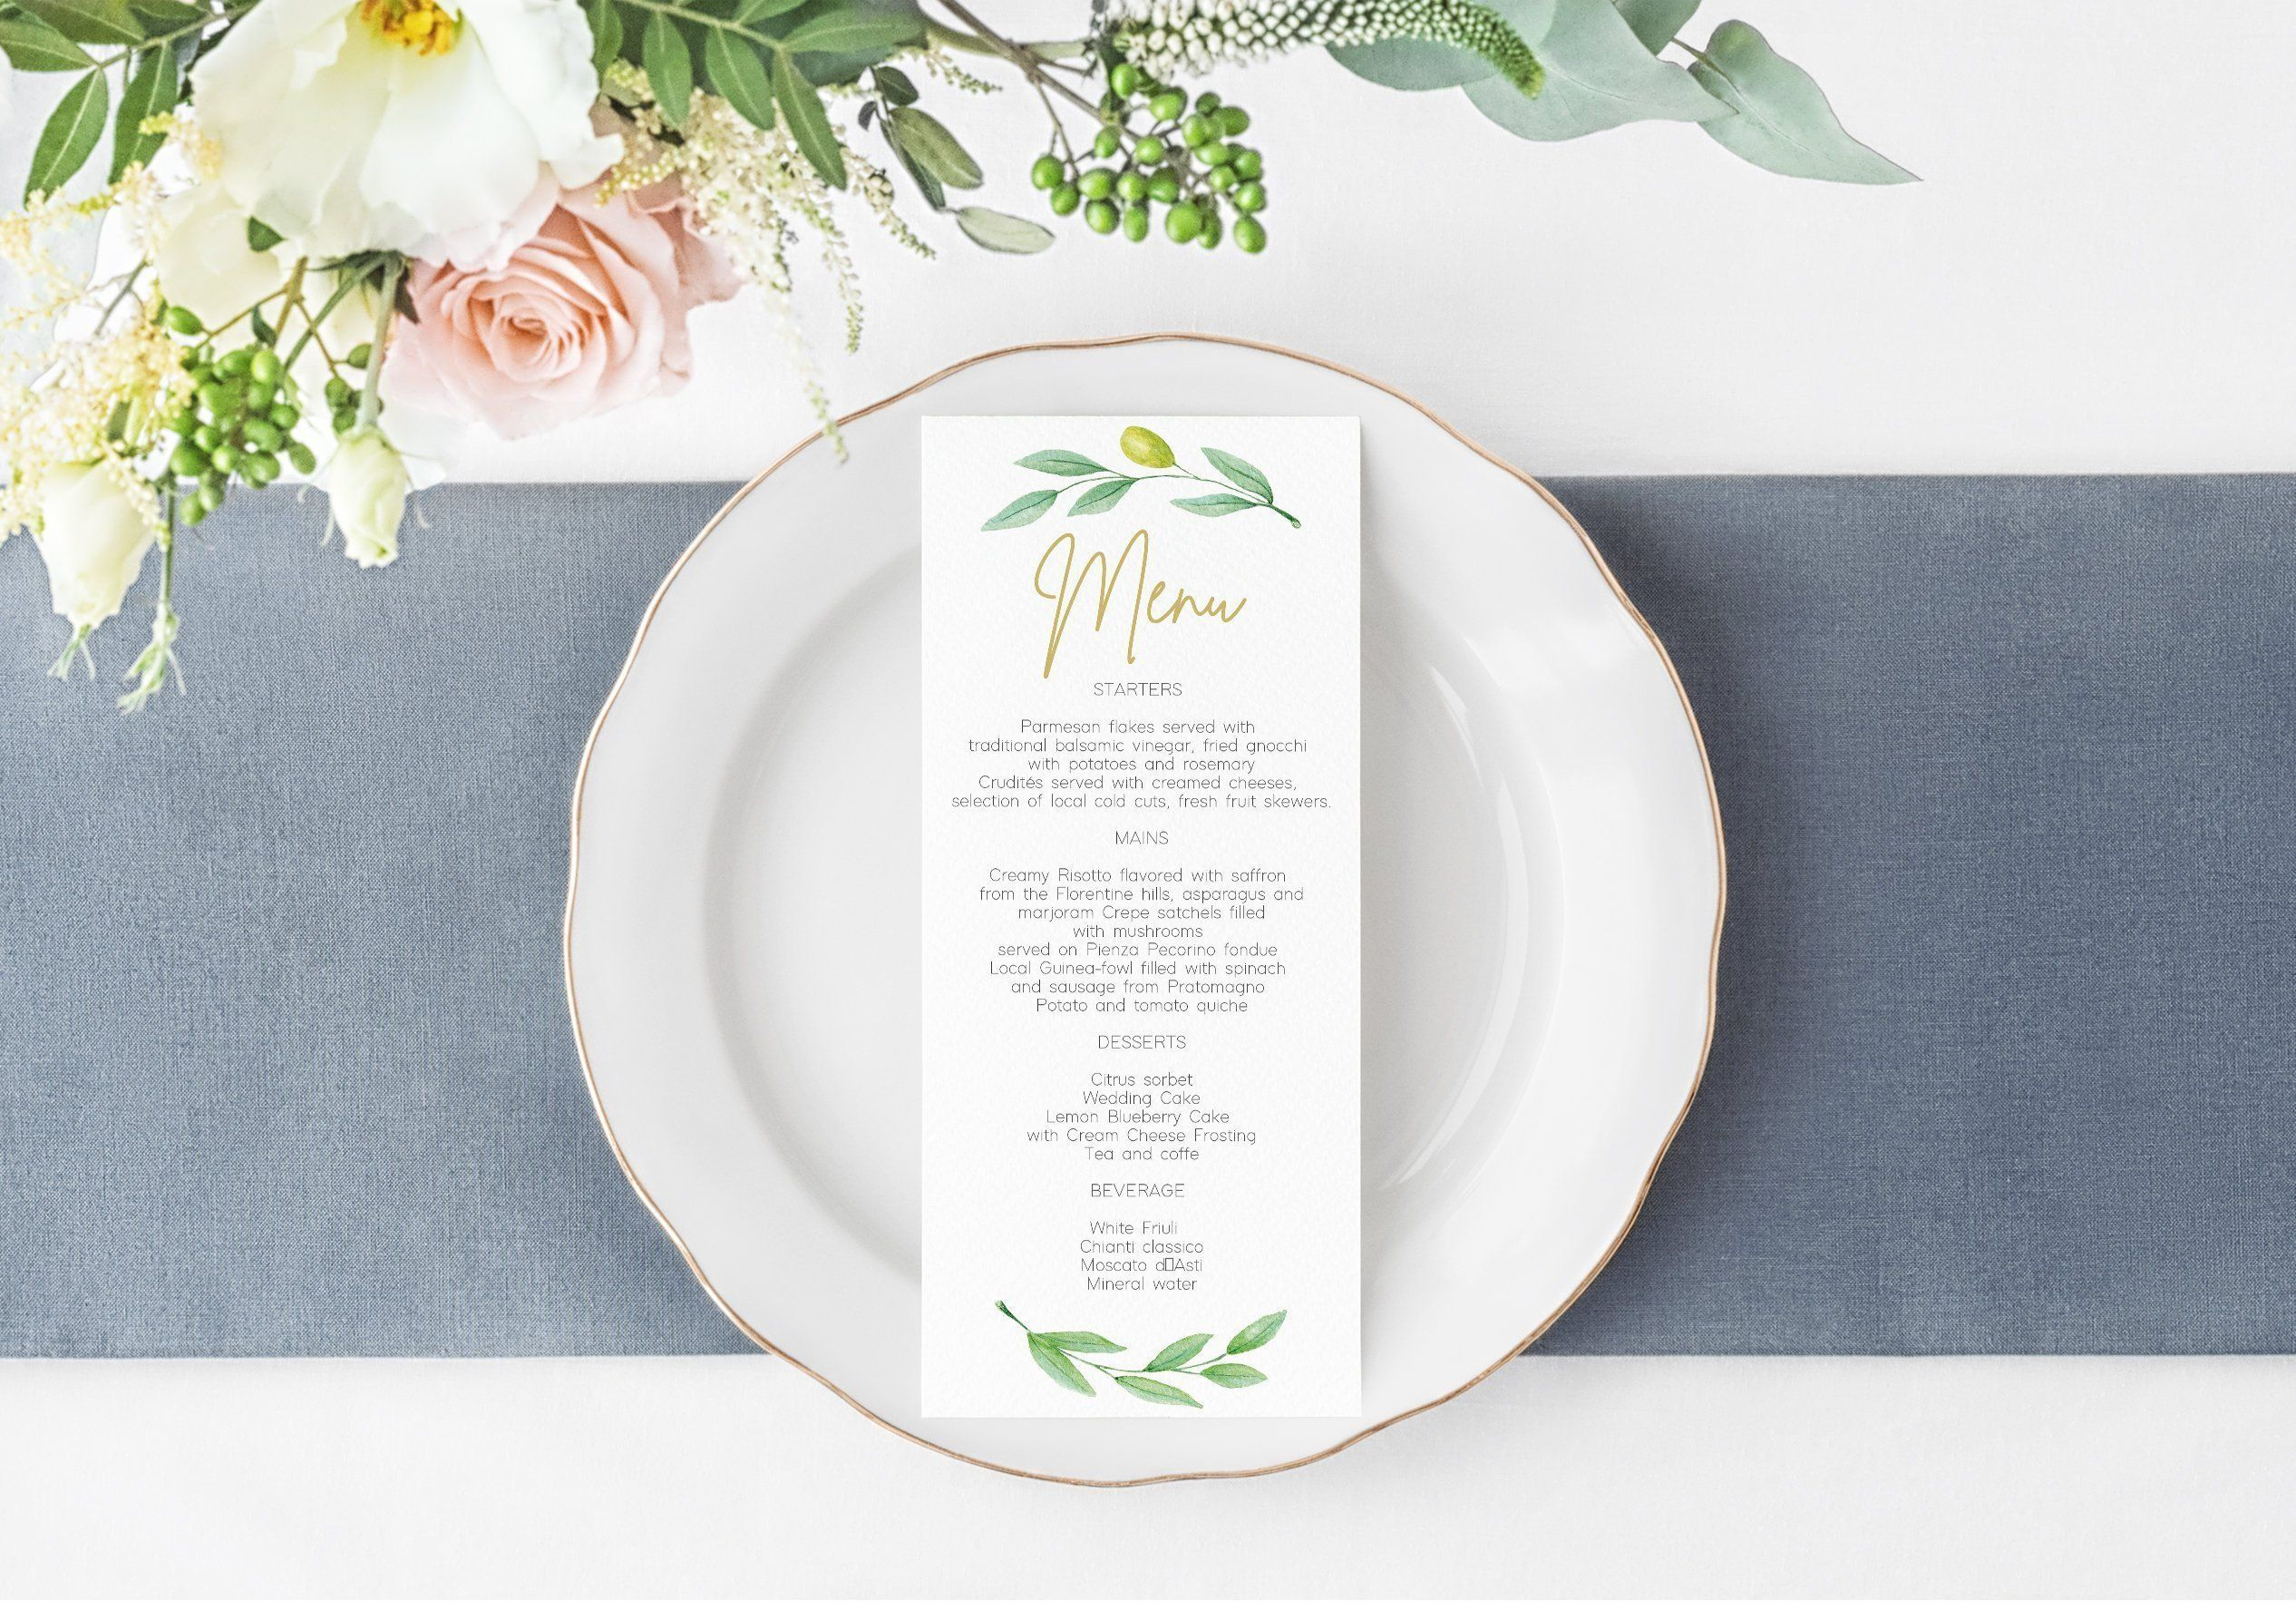 Wedding Menu Template, Greenery and Gold Wedding Menu Card, Printable Restaurant Green Menu Card, Olive Printable DIY Menu Card SRP-004 #weddingmenutemplate Wedding Menu Template, Greenery and Gold Wedding Menu Card, Printable Restaurant Green Menu Card, Olive Printable DIY Menu Card #weddingmenu #grenerymenucard #printablemenu #weddingprintable #olivemenutemplate #greenerywedding #rusticmenucard  #olivewedding #weddingmenutemplate